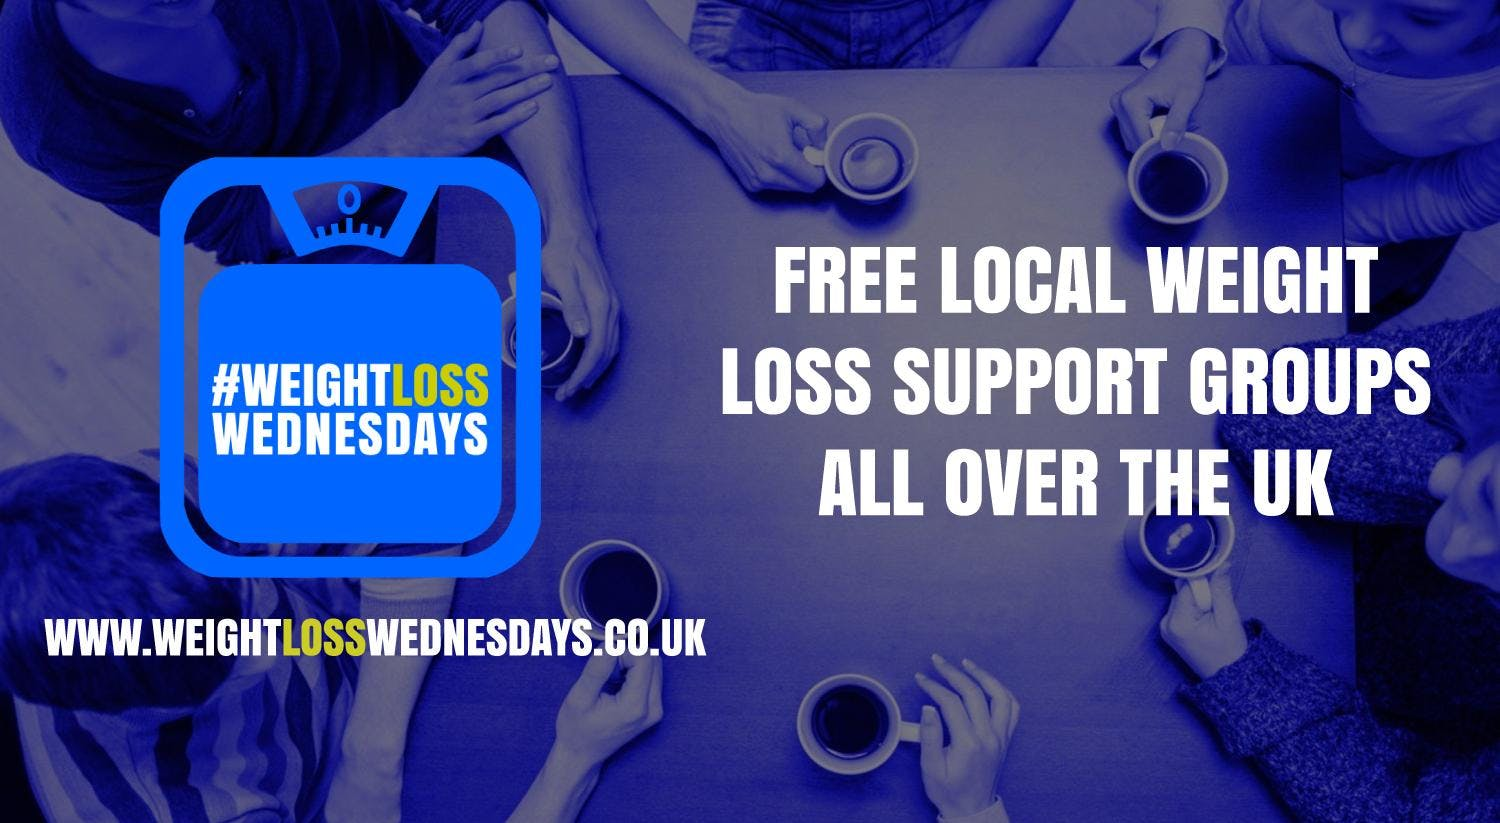 WEIGHT LOSS WEDNESDAYS! Free weekly support group in Cramlington